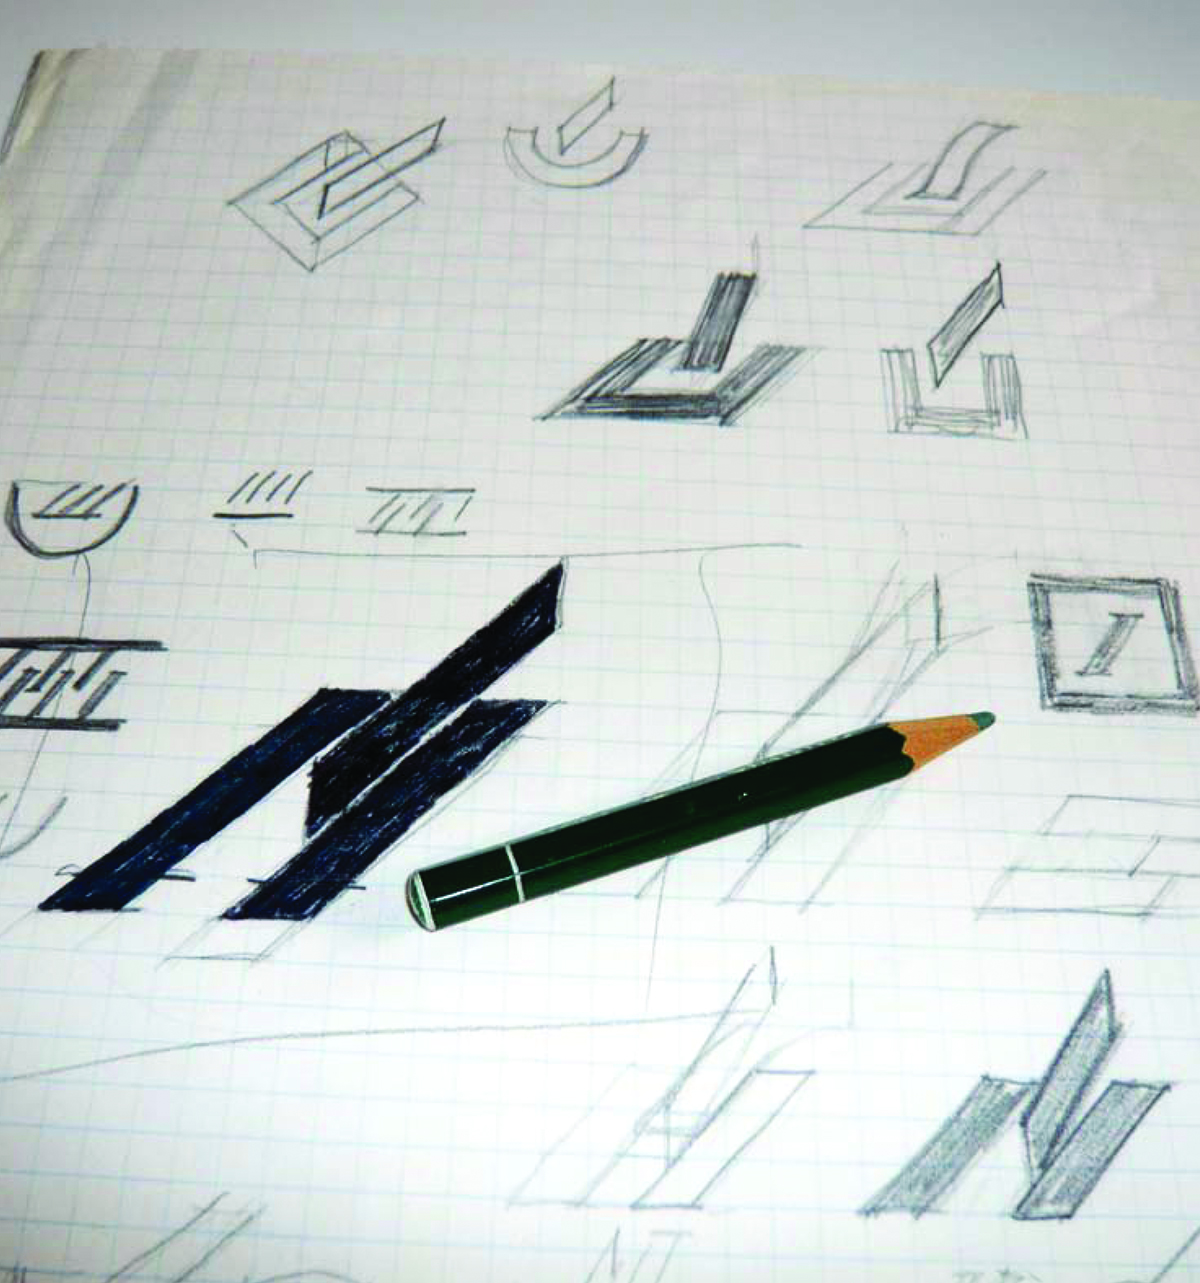 Initial sketches for the Deutsche Bank logo competition